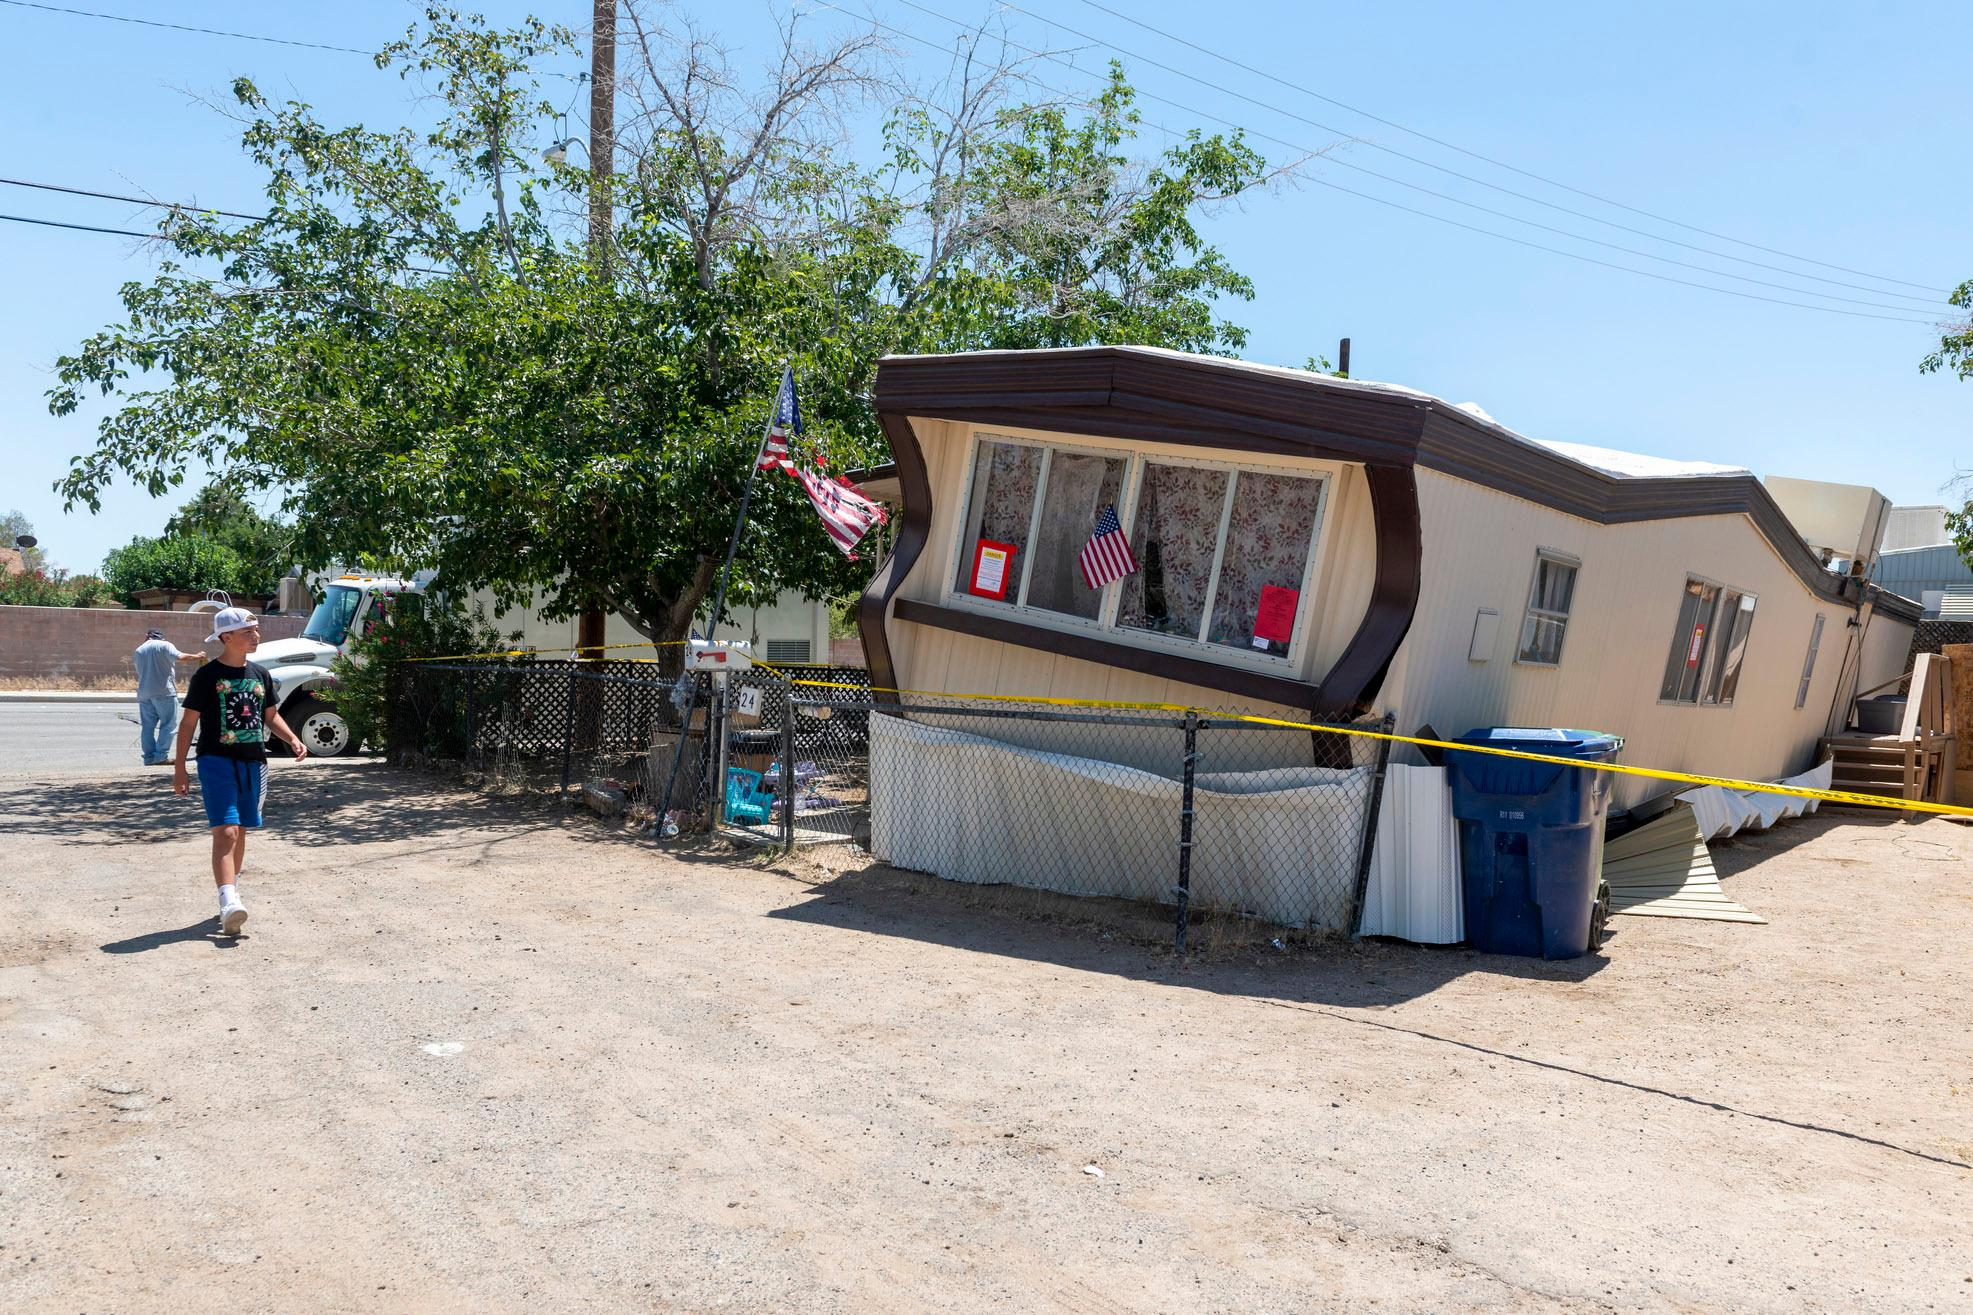 A child walks by one of the mobile homes knocked off its foundation by an earthquake in Ridgecrest, Calif., on Friday July 5, 2019. The strongest earthquake in 20 years shook a large swath of Southern California and parts of Nevada on the July 4th holiday, rattling nerves and causing injuries and damage in a town near the epicenter, followed by a swarm of ongoing aftershocks. The 6.4 magnitude quake struck Thursday morning in the Mojave Desert, about 150 miles northeast of Los Angeles, near the town of Ridgecrest. (James Quigg/The Daily Press via AP)